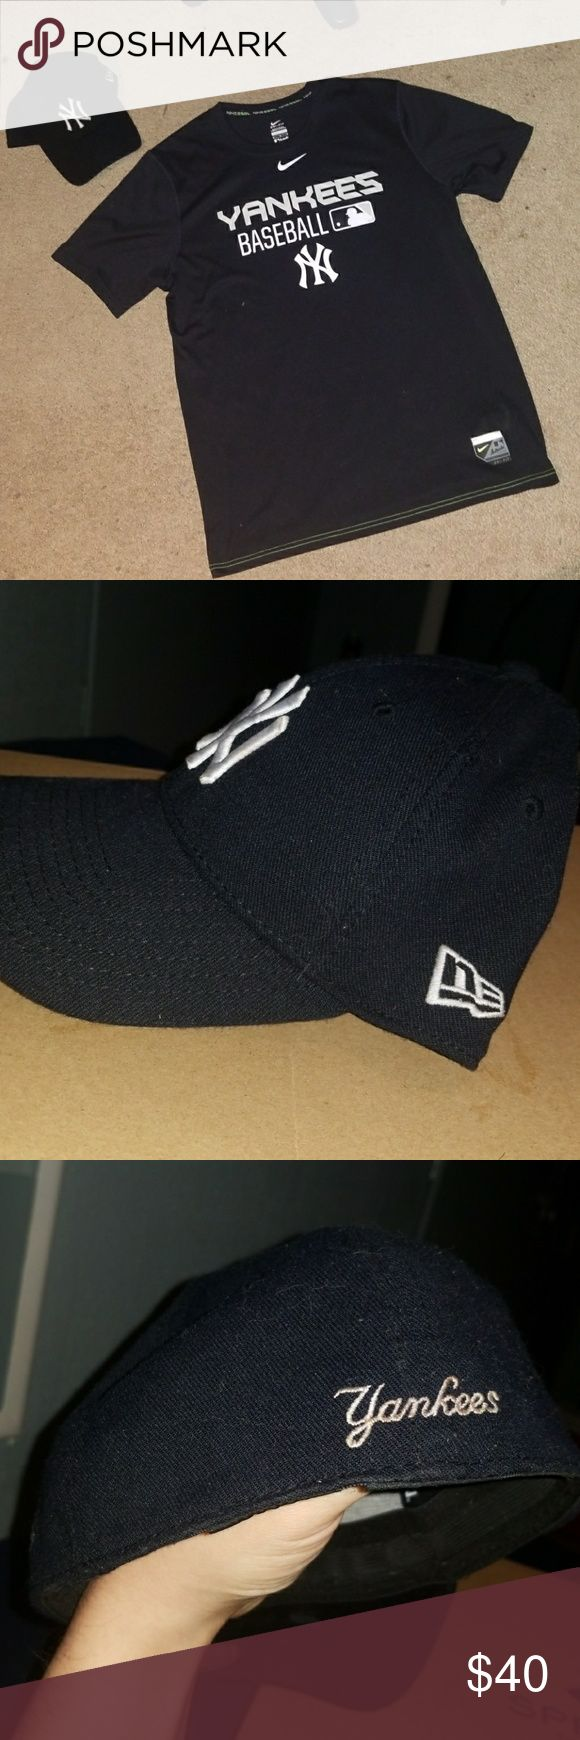 SET nike new york Yankees shirt plus new era hat Selling both together  will not seperate!!  Shirt nike size medium excellent condition  Hat is 39thirty elastic new era size medium/large great condition also   Blaze apple watch fit bit galaxy polo ralph lauren nike lacoste jordan gucci prada chanel tori burch armani versace dolce gabanna Louis vuitton calvin klein lacoste true religion lv levis northface adidas under armour yeezy leather bomber watch guess oakley raybans ray ban rayban ray…